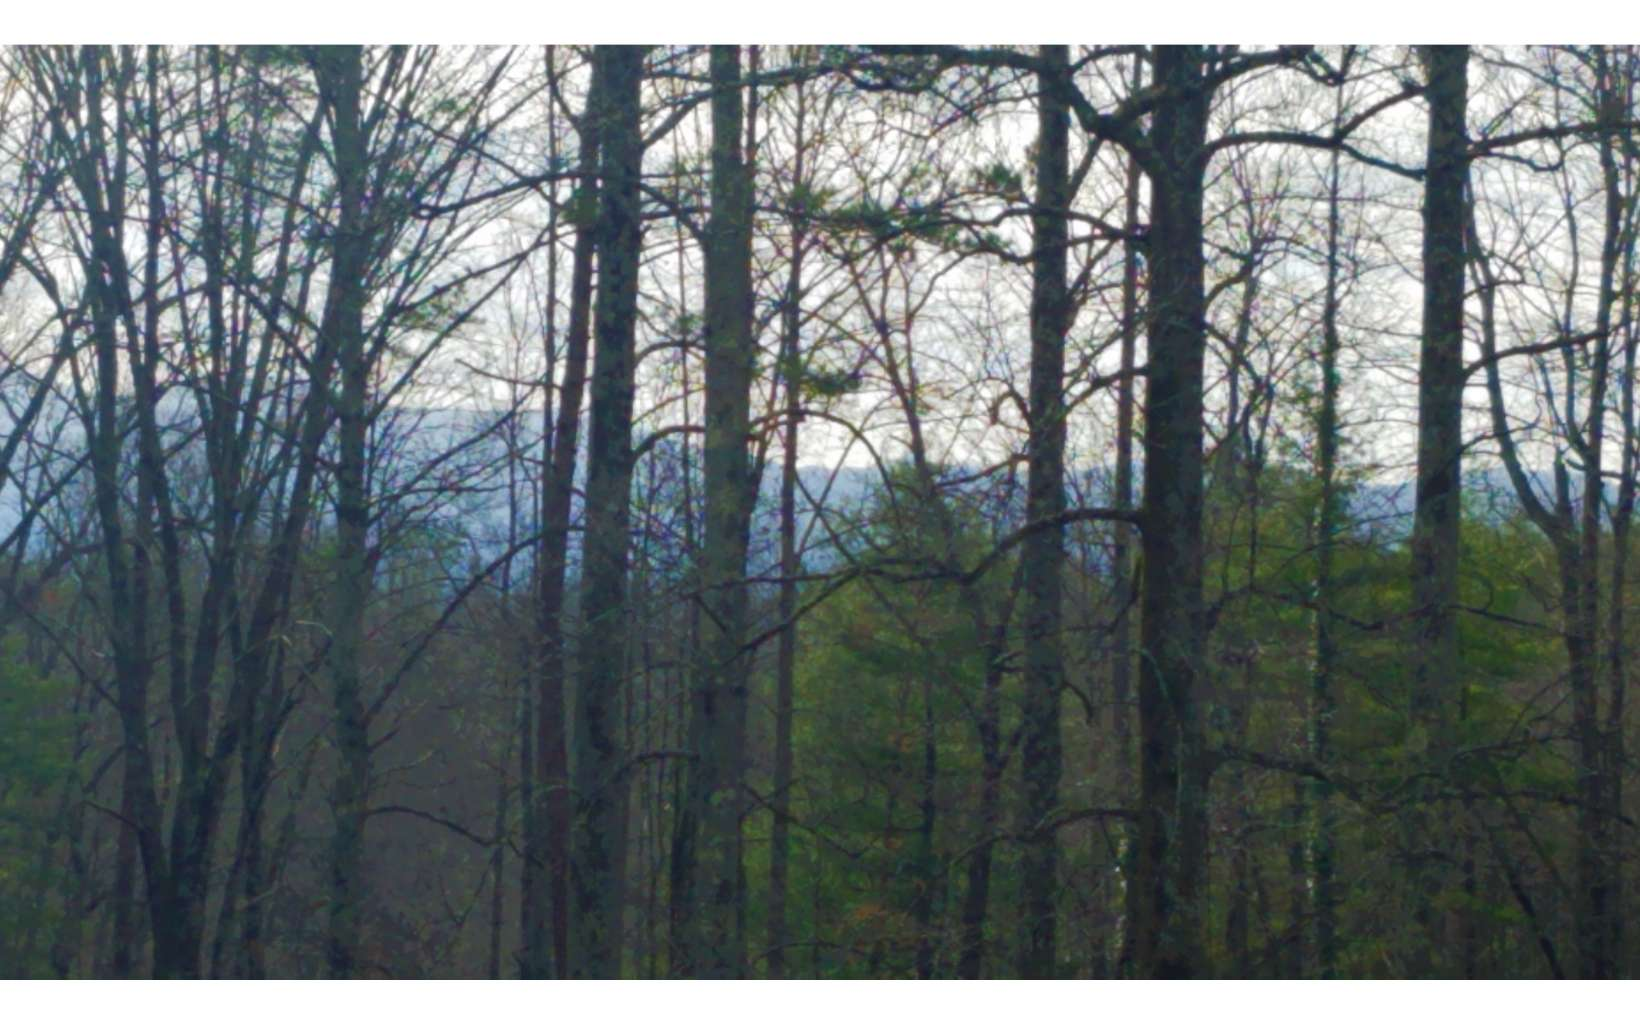 Nice gentle lot approximately 400' of road frontage, paved access, seasonal mountain views, located between Blue Ridge and Ellijay off Boardtown Rd. Close to hiking, Toccoa River, Blue Ridge Lake and Downtown Blue Ridge for Shopping & Dinning.